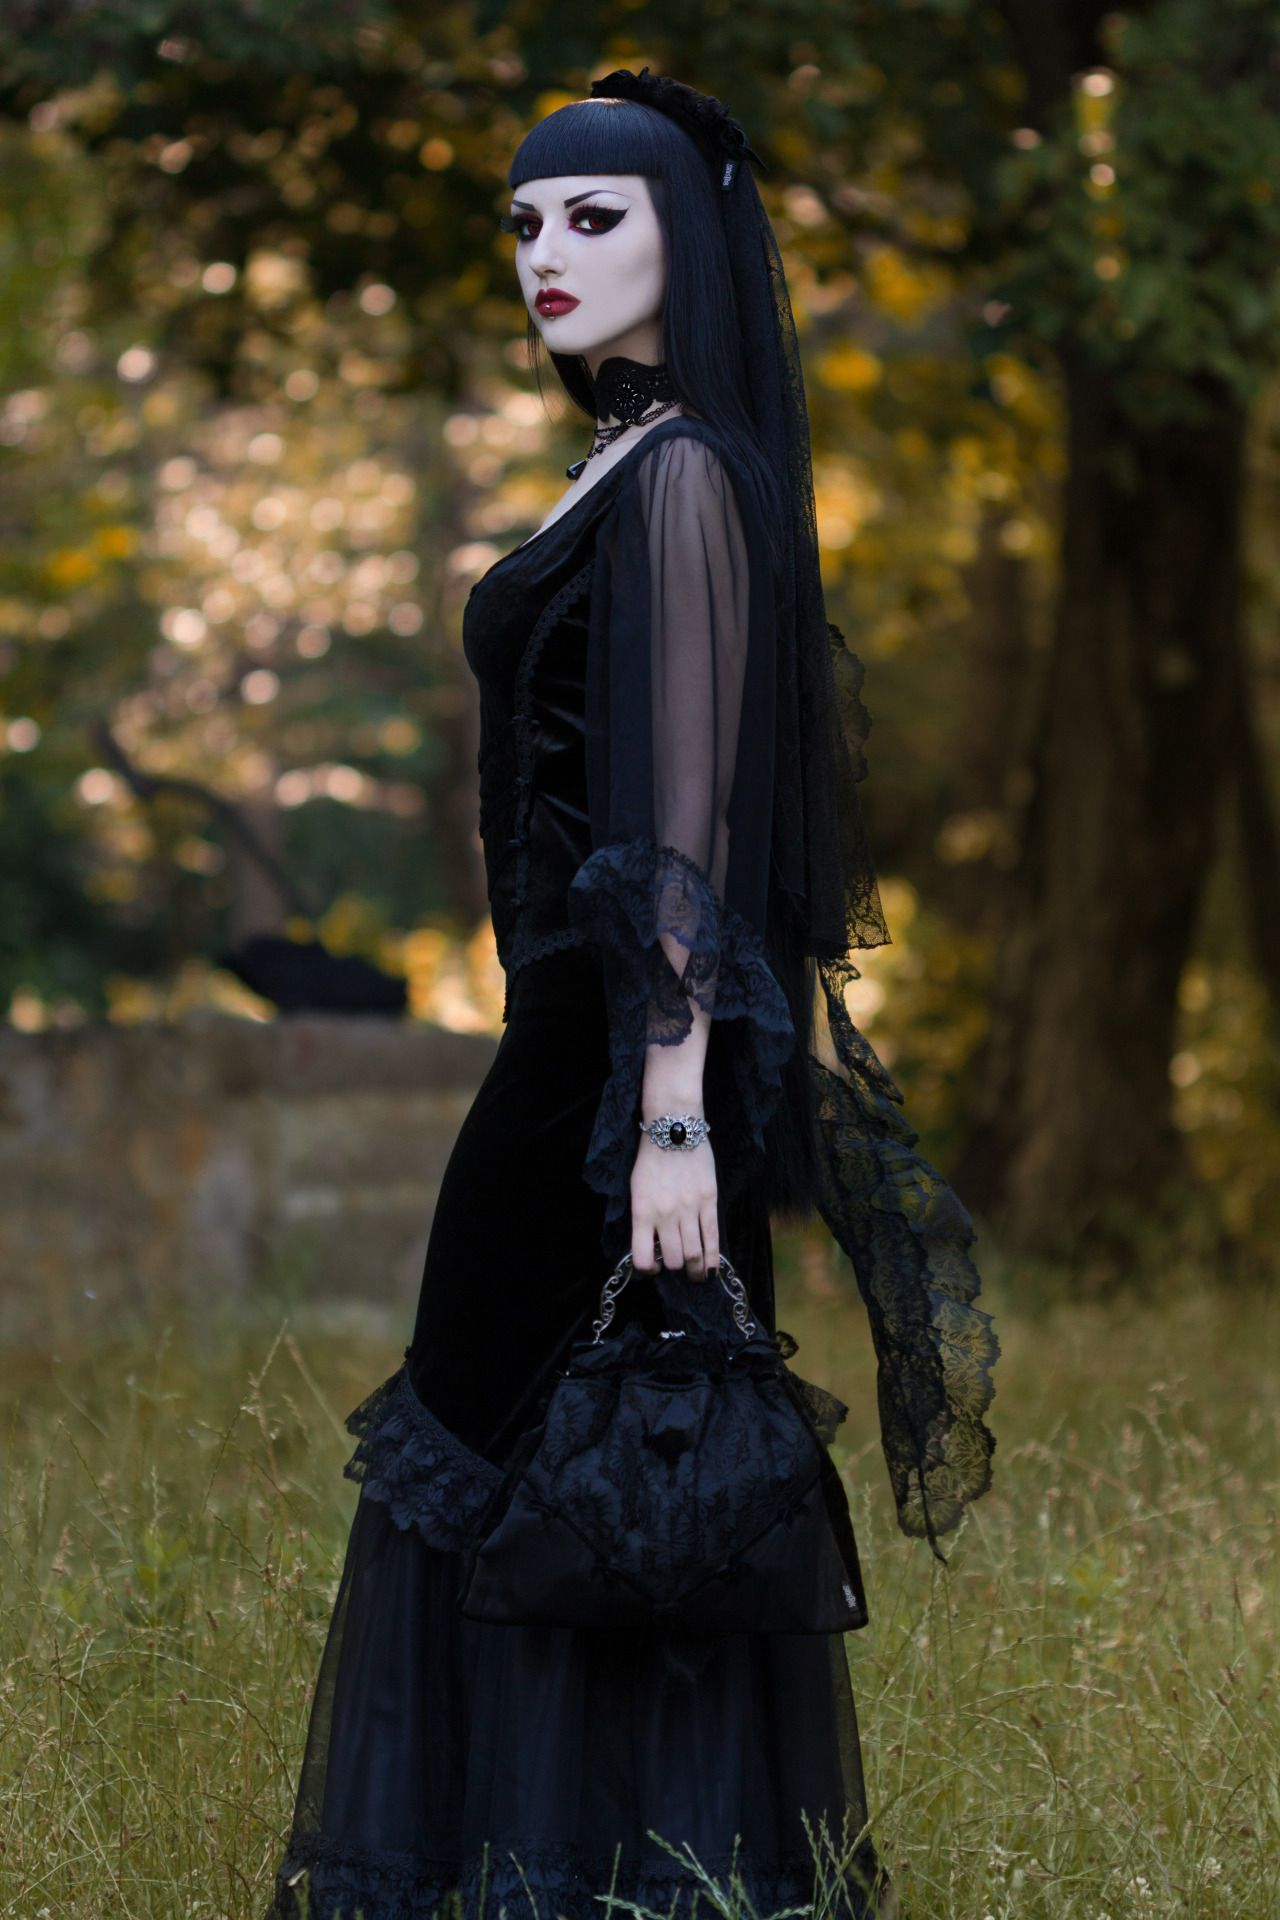 Model obsidian kerttu photo john wolfrik dress gothic and